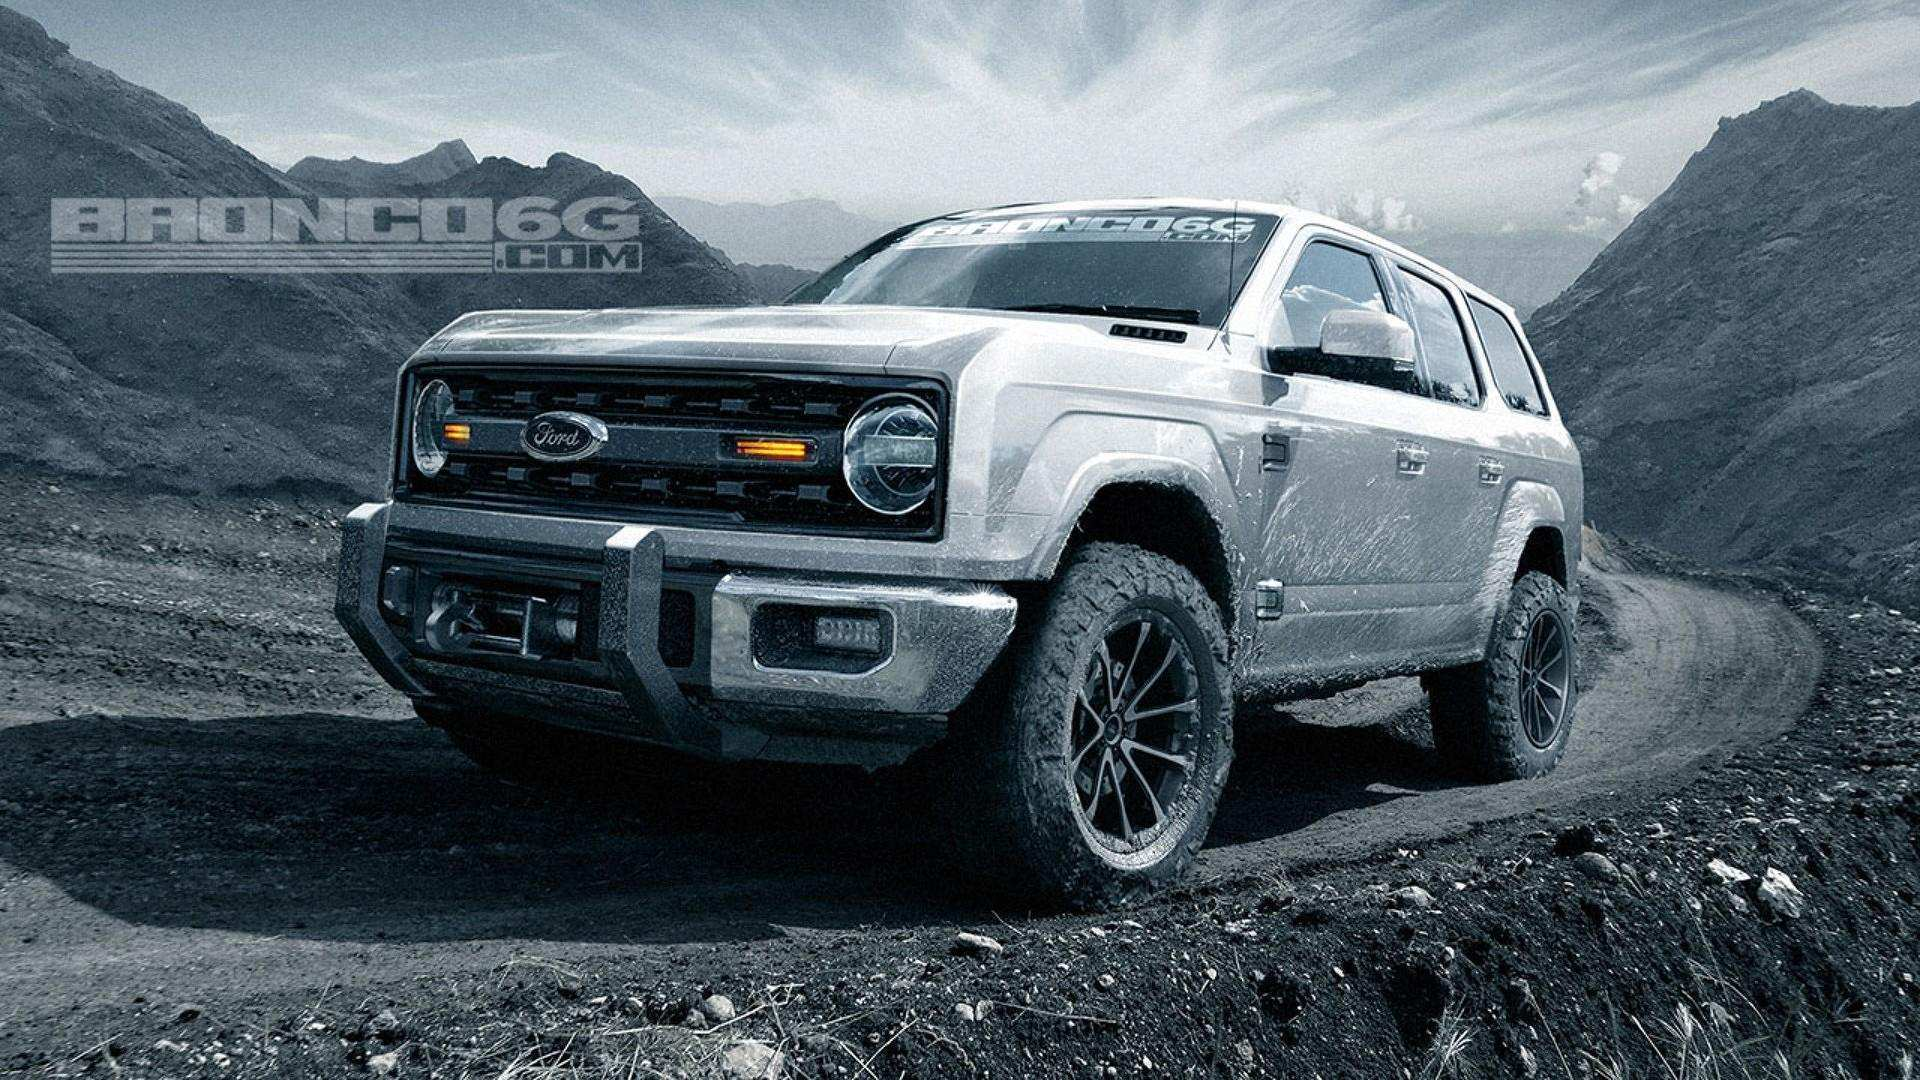 36 New When Will The 2020 Ford Bronco Be Released Specs